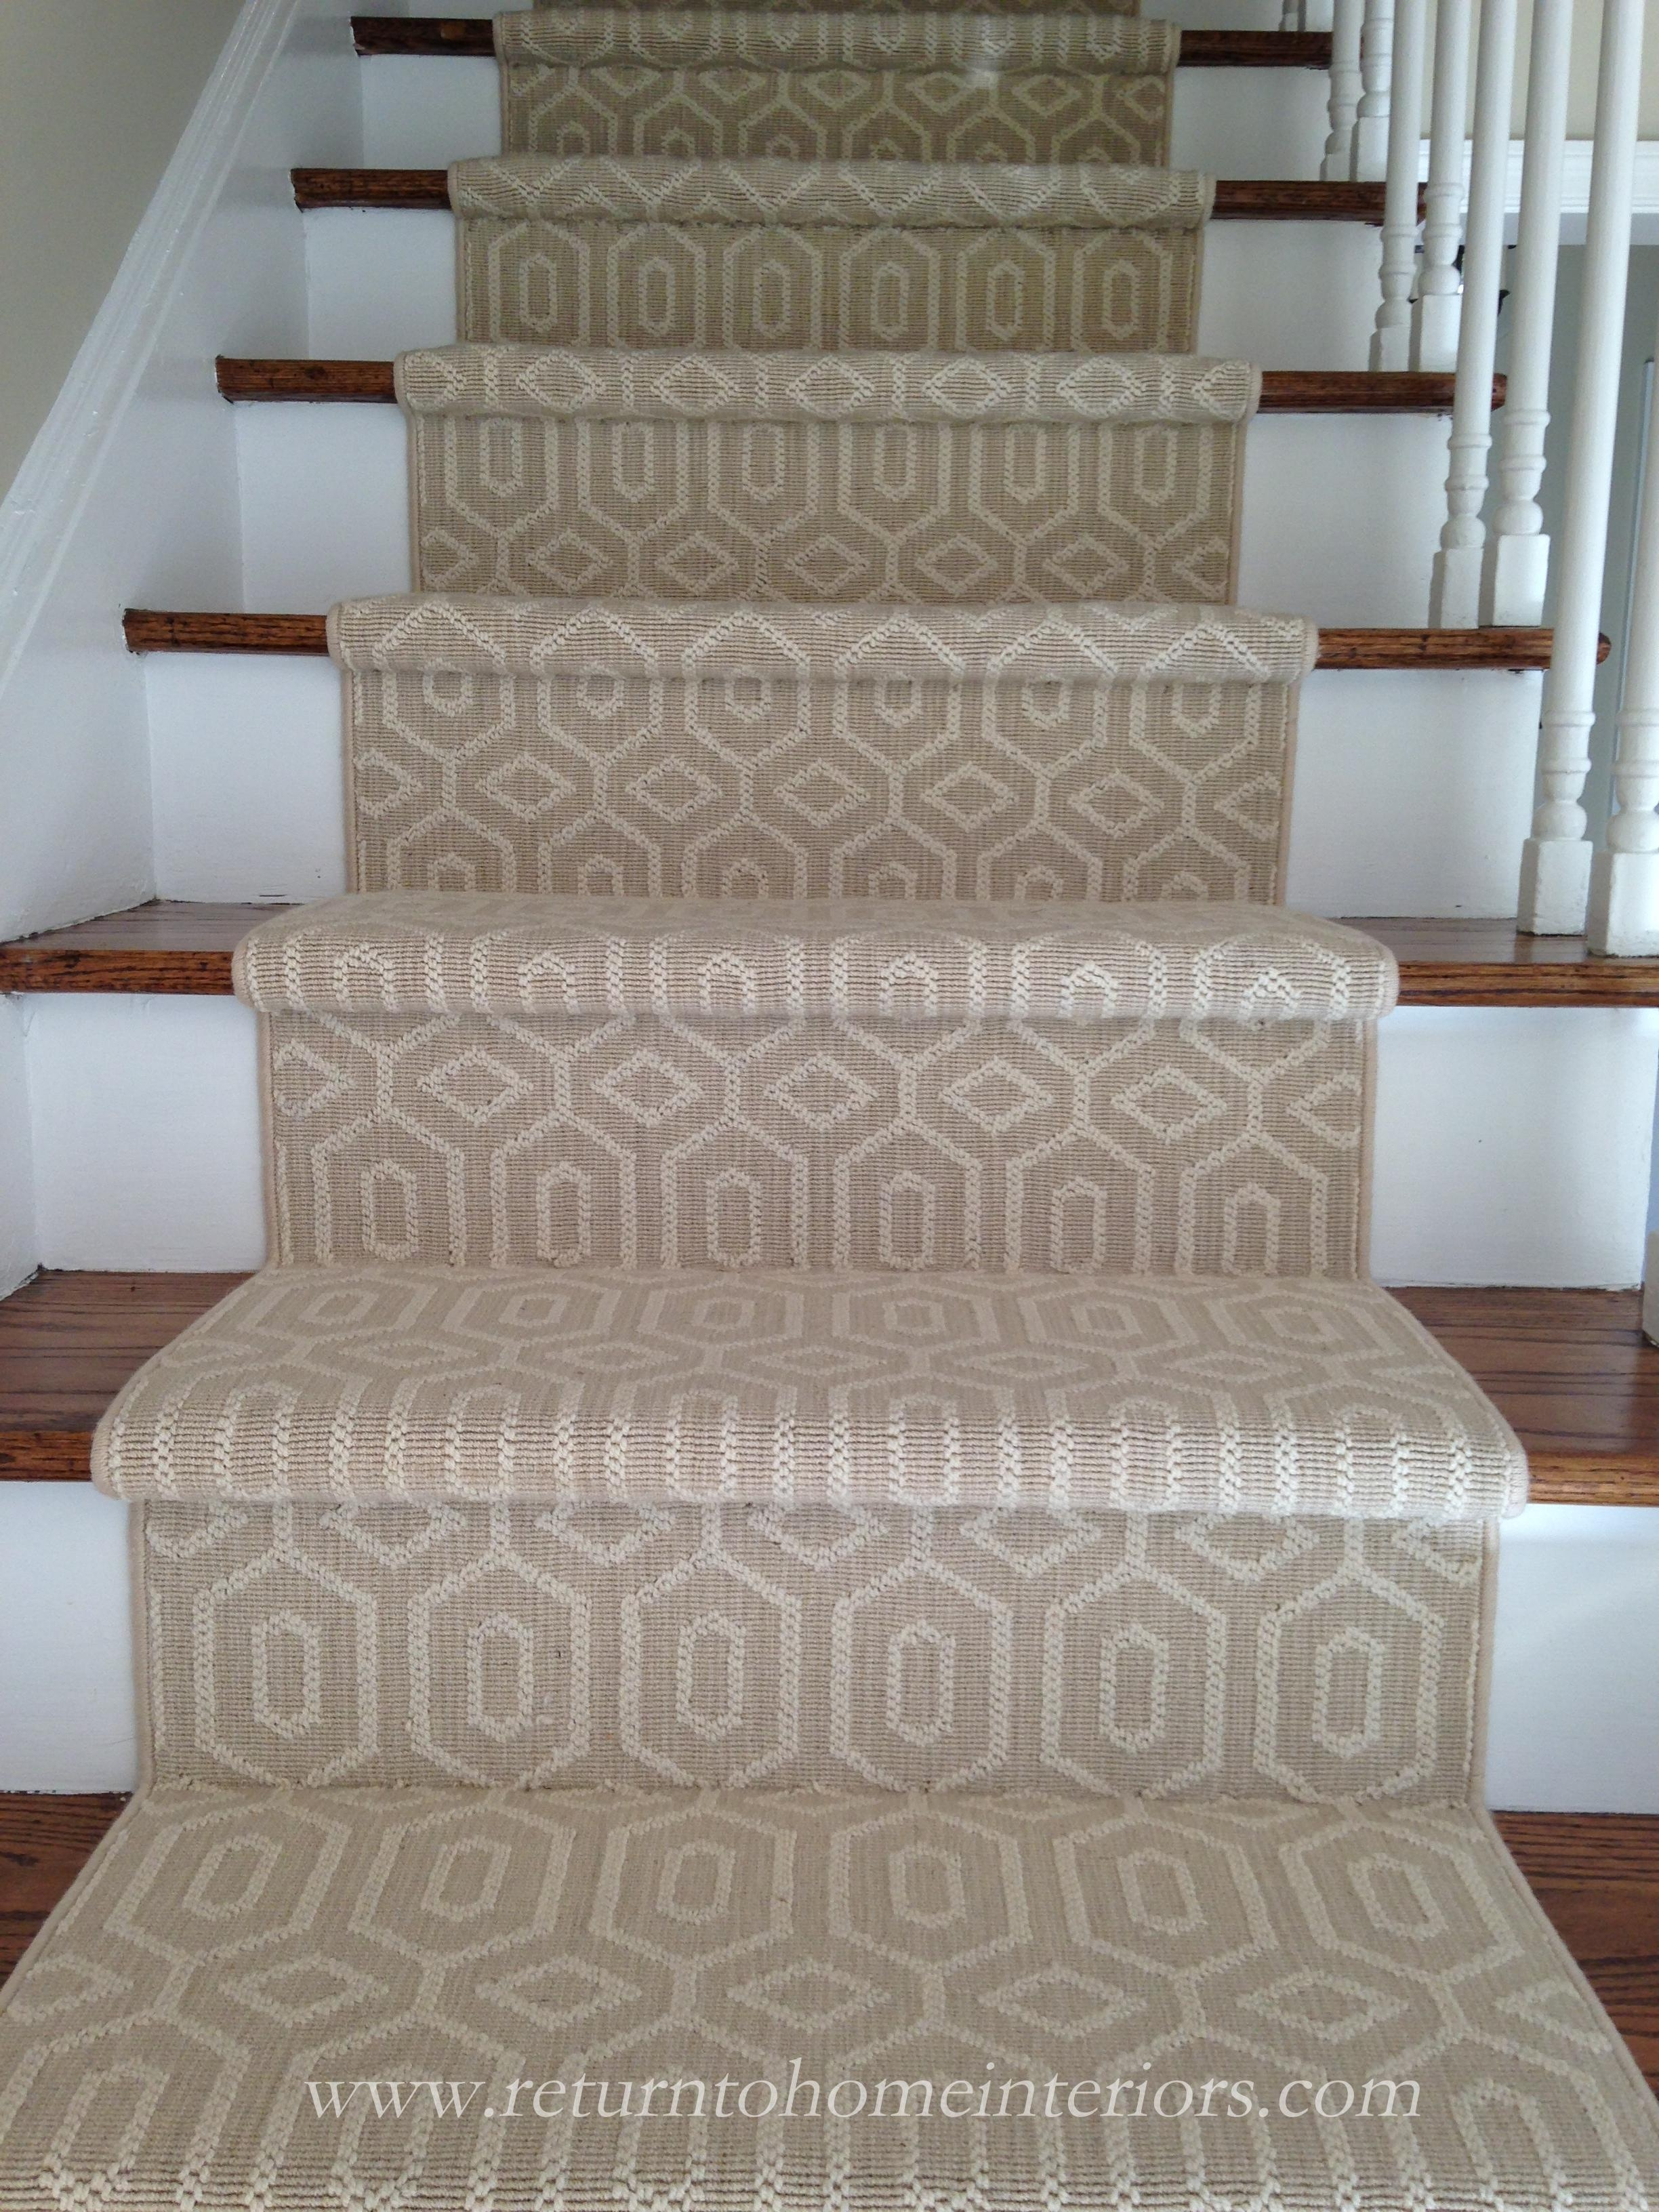 Choosing A Stair Runner Some Inspiration And Lessons Learned | Designer Carpet For Stairs | Stair Railing | Farmhouse | Classical Design | Style New York | Rectangular Cord Treads